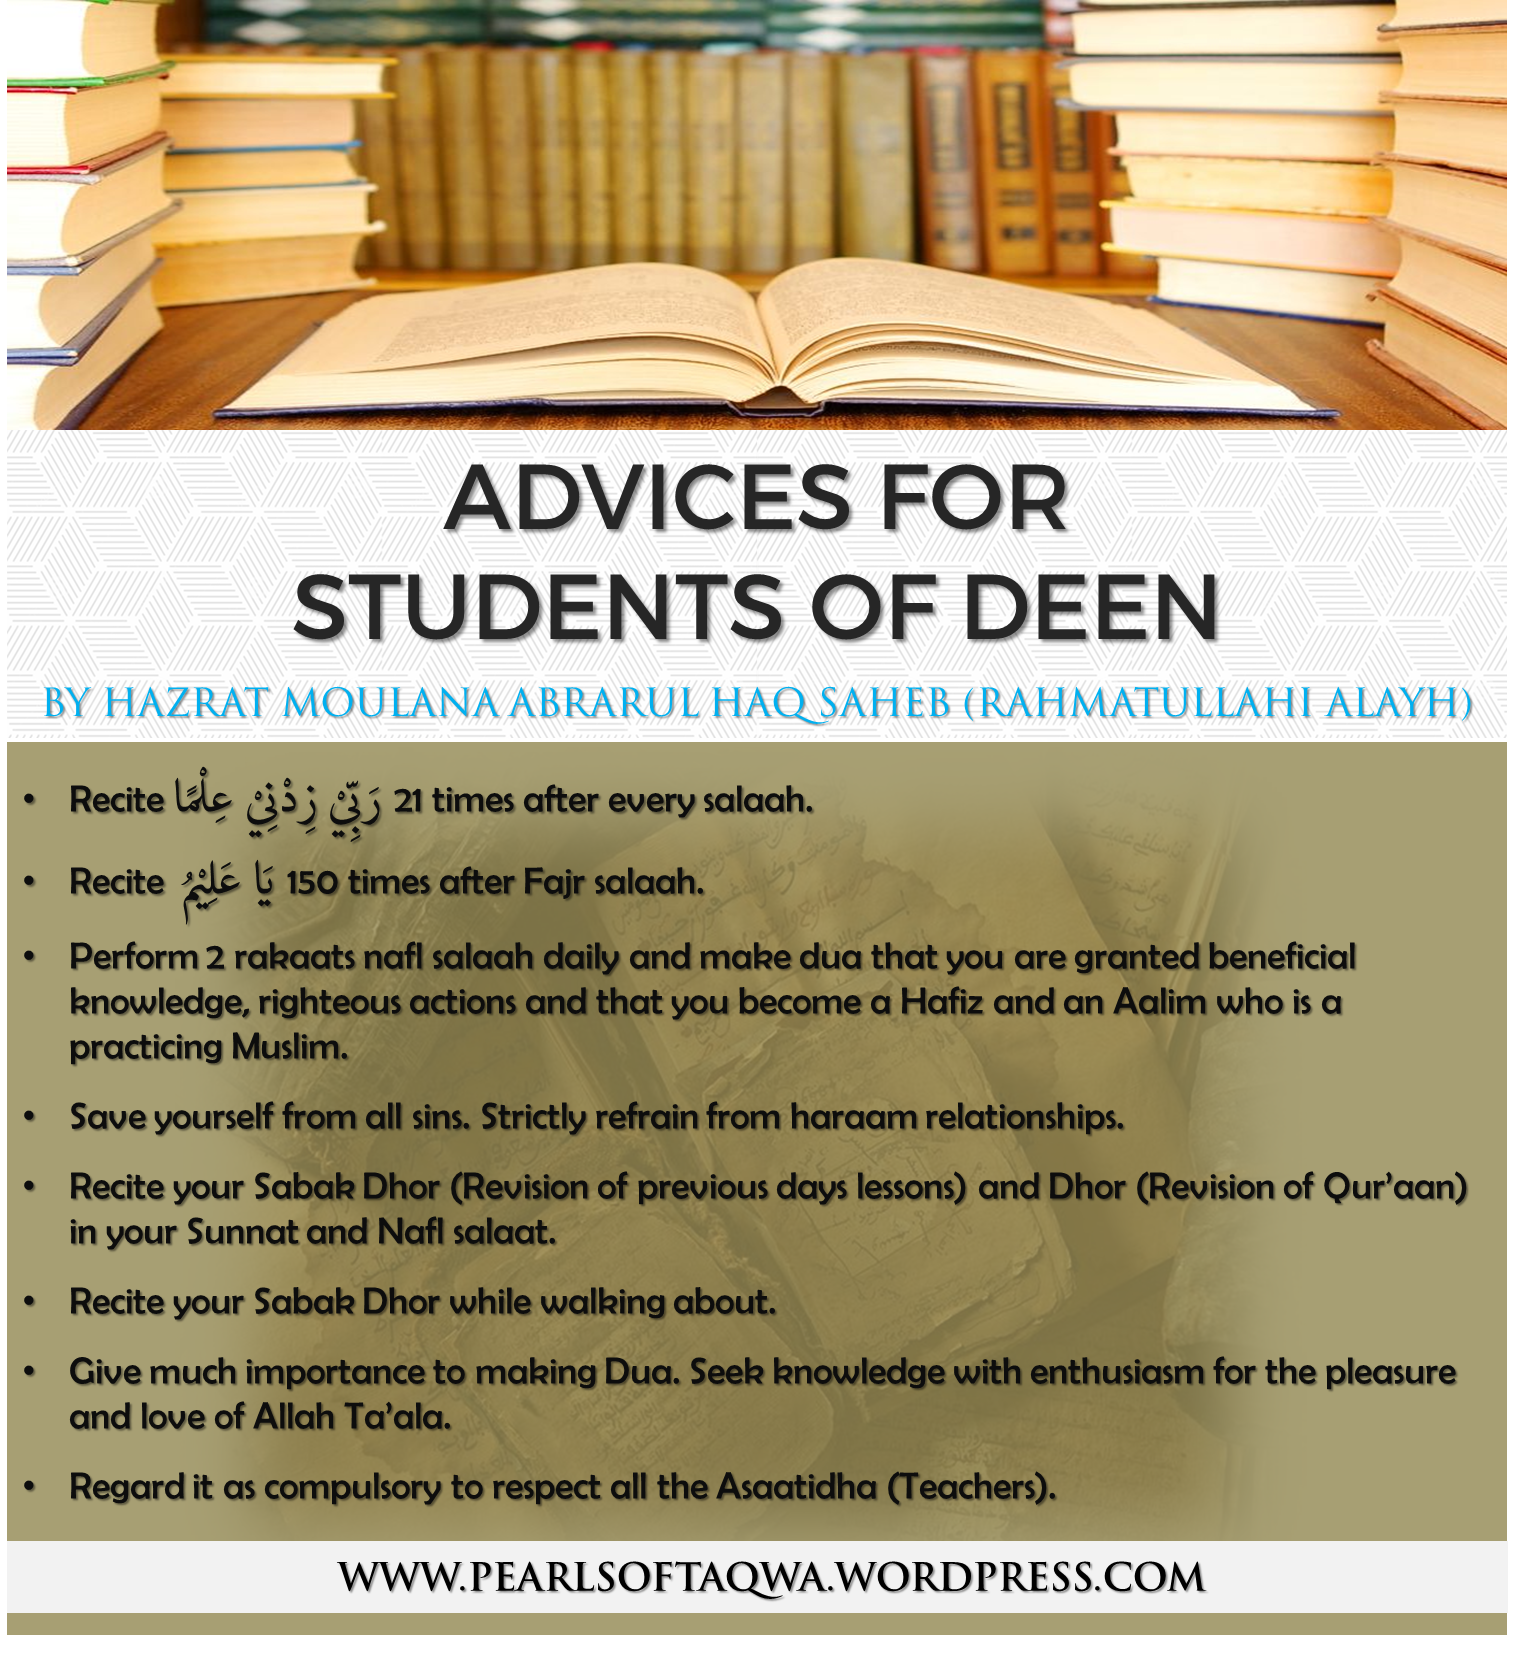 Advices For Students